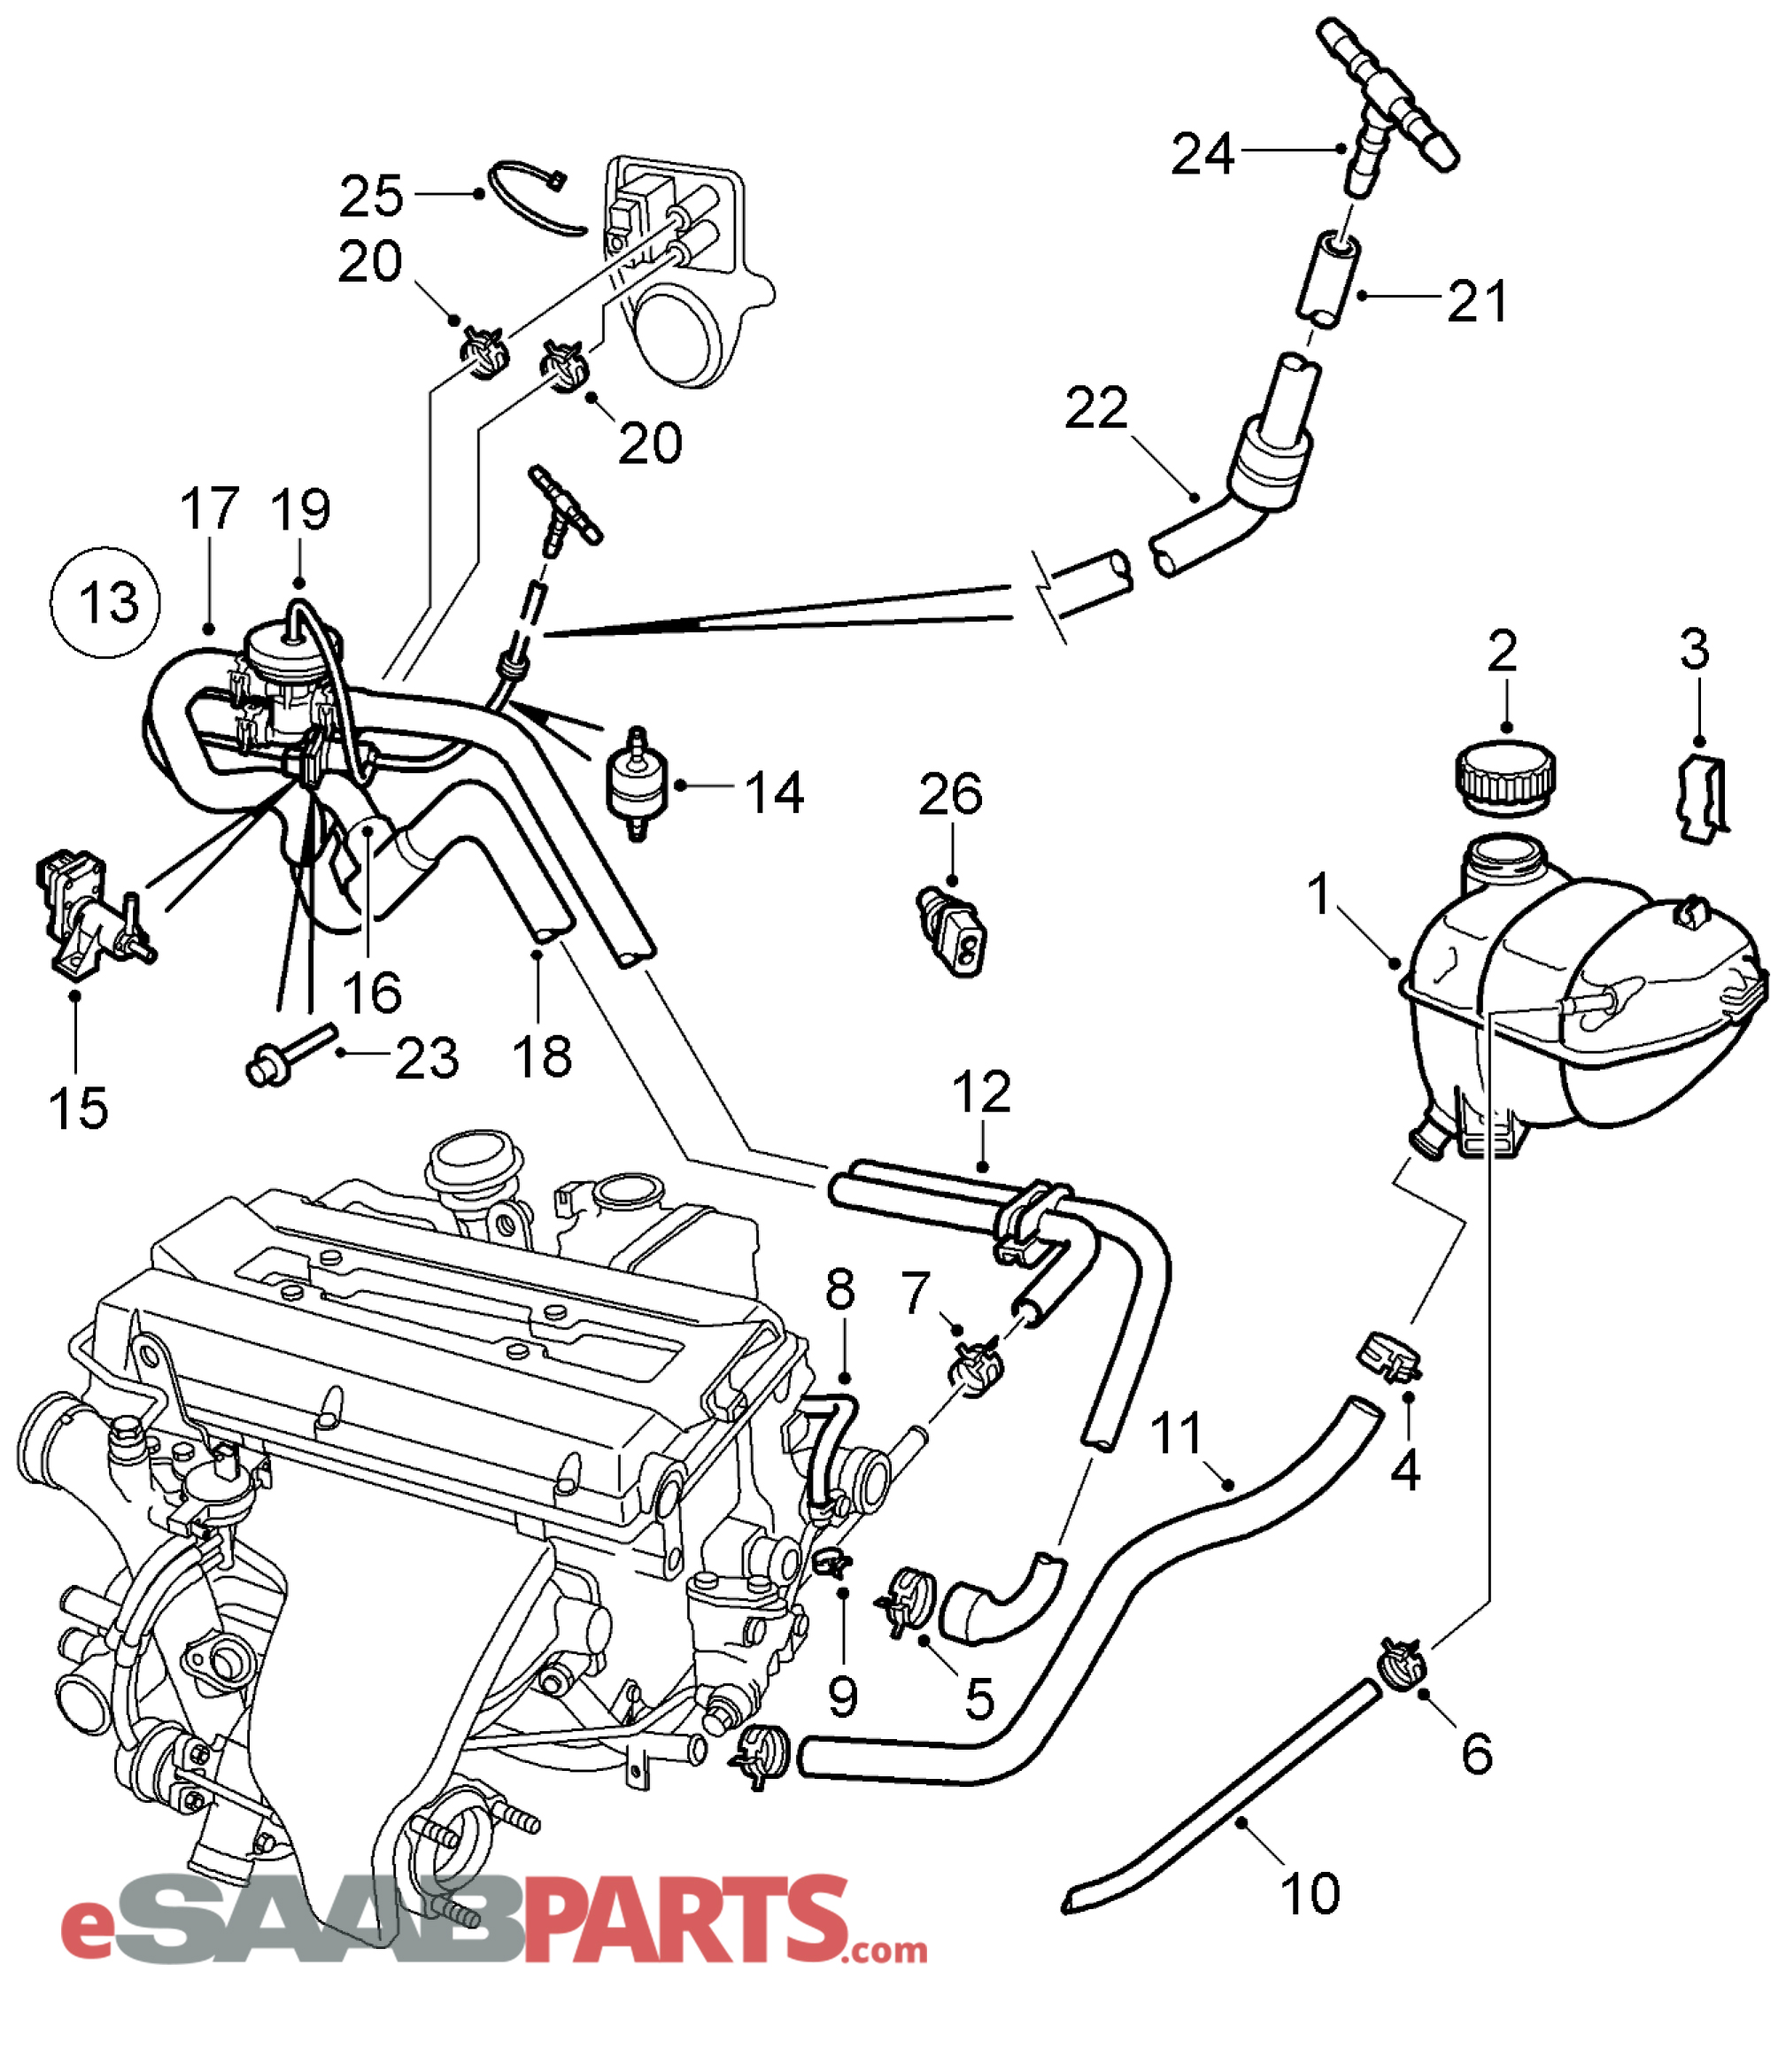 1996 Corvette Engine Partment Diagram 1996 Corvette